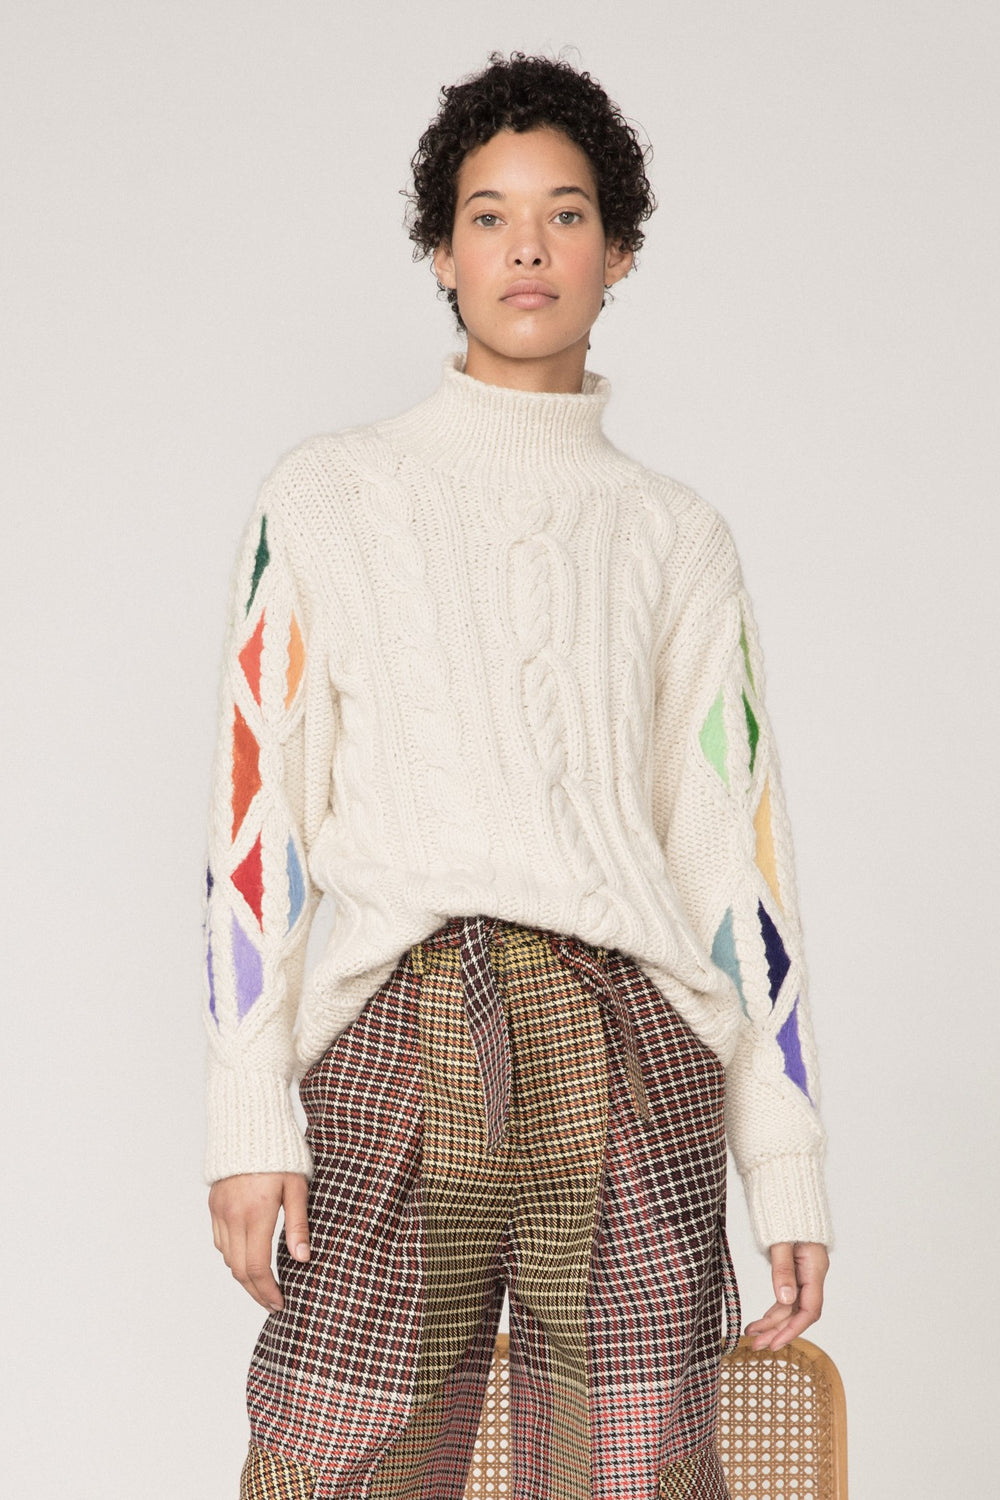 Rosie Assoulin Fall 2019 Knit Pain in the Glass Sweater. Traditional cableknit sweater. Needle-felted rainbow panels on sleeves. Mock neckline. Oversized fit. Cream. 100% Baby Alpaca Wool. Sizes XS - L.